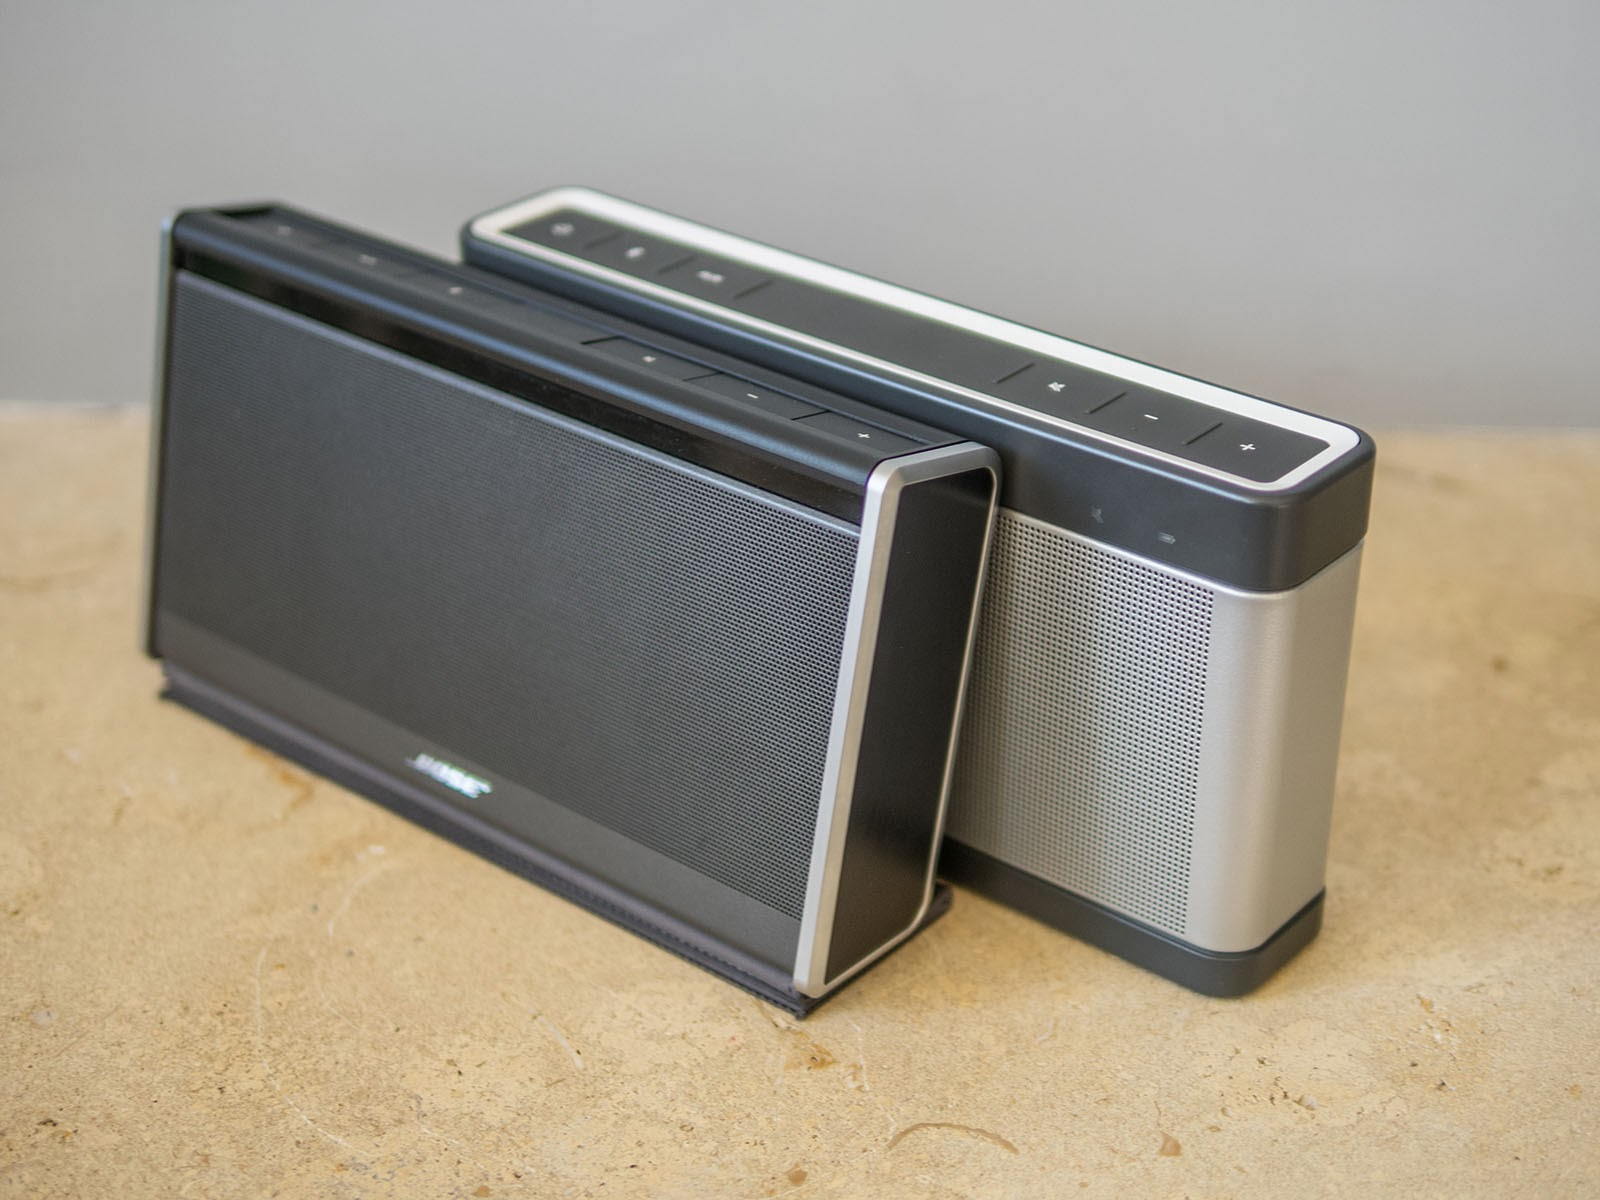 bose mini soundlink 3. the soundlink iii is standing straight now and therefore missing slight upwards tilt of previous versions, but treble response considerably bose mini 3 i